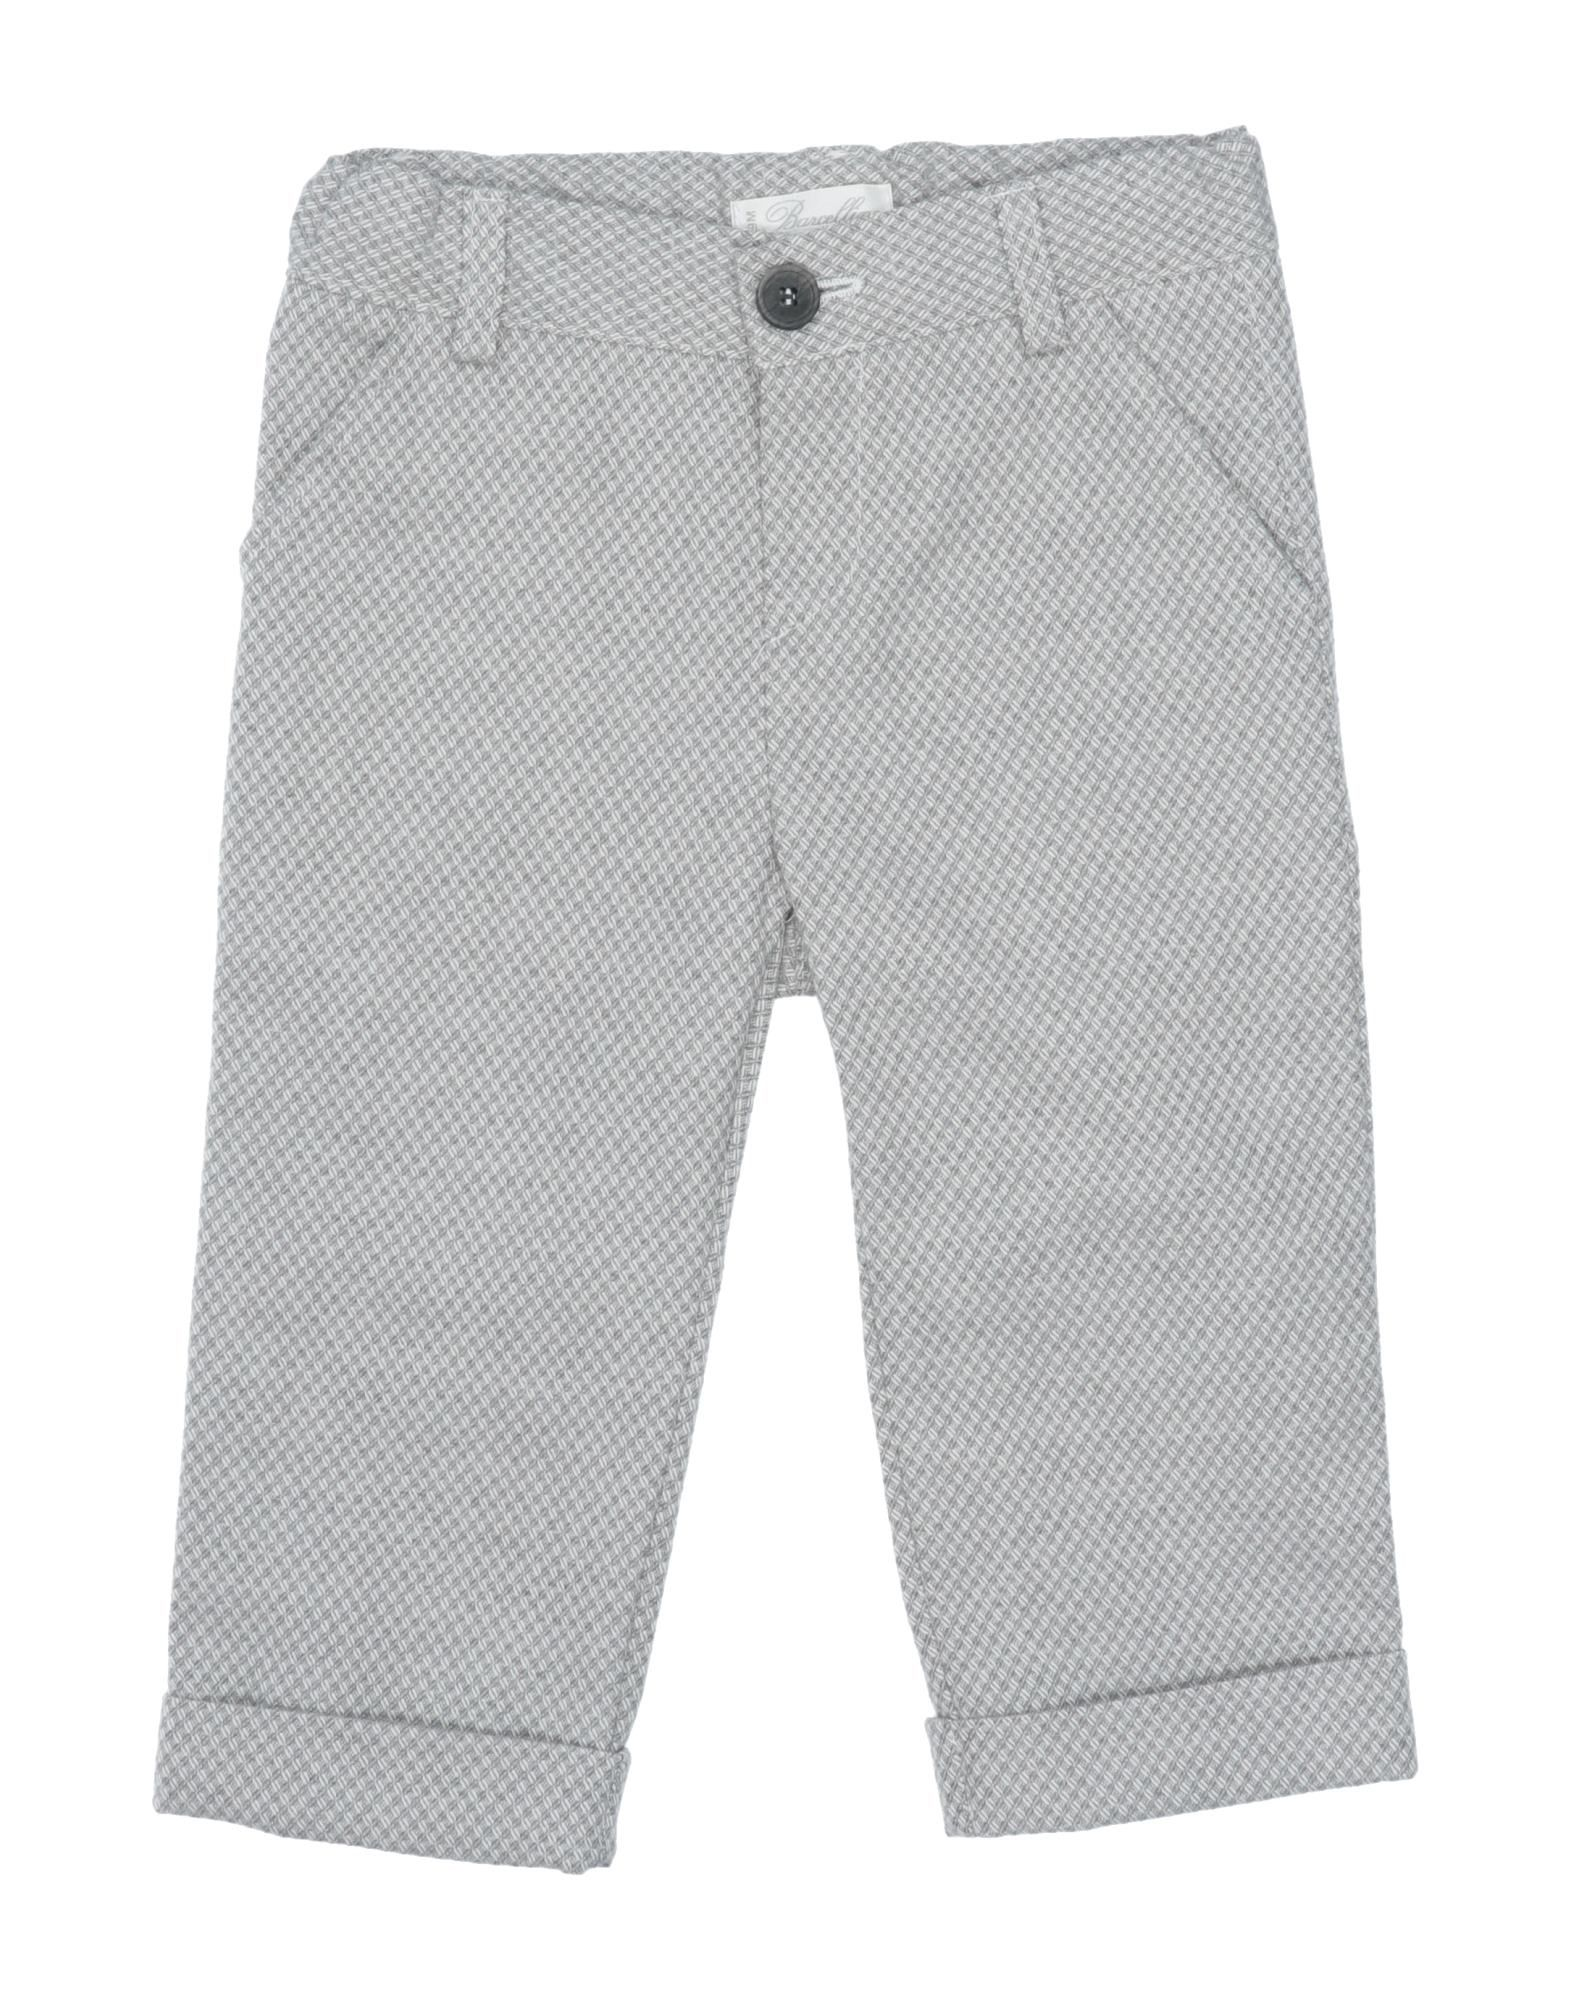 Barcellino® Kids' Casual Pants In Gray